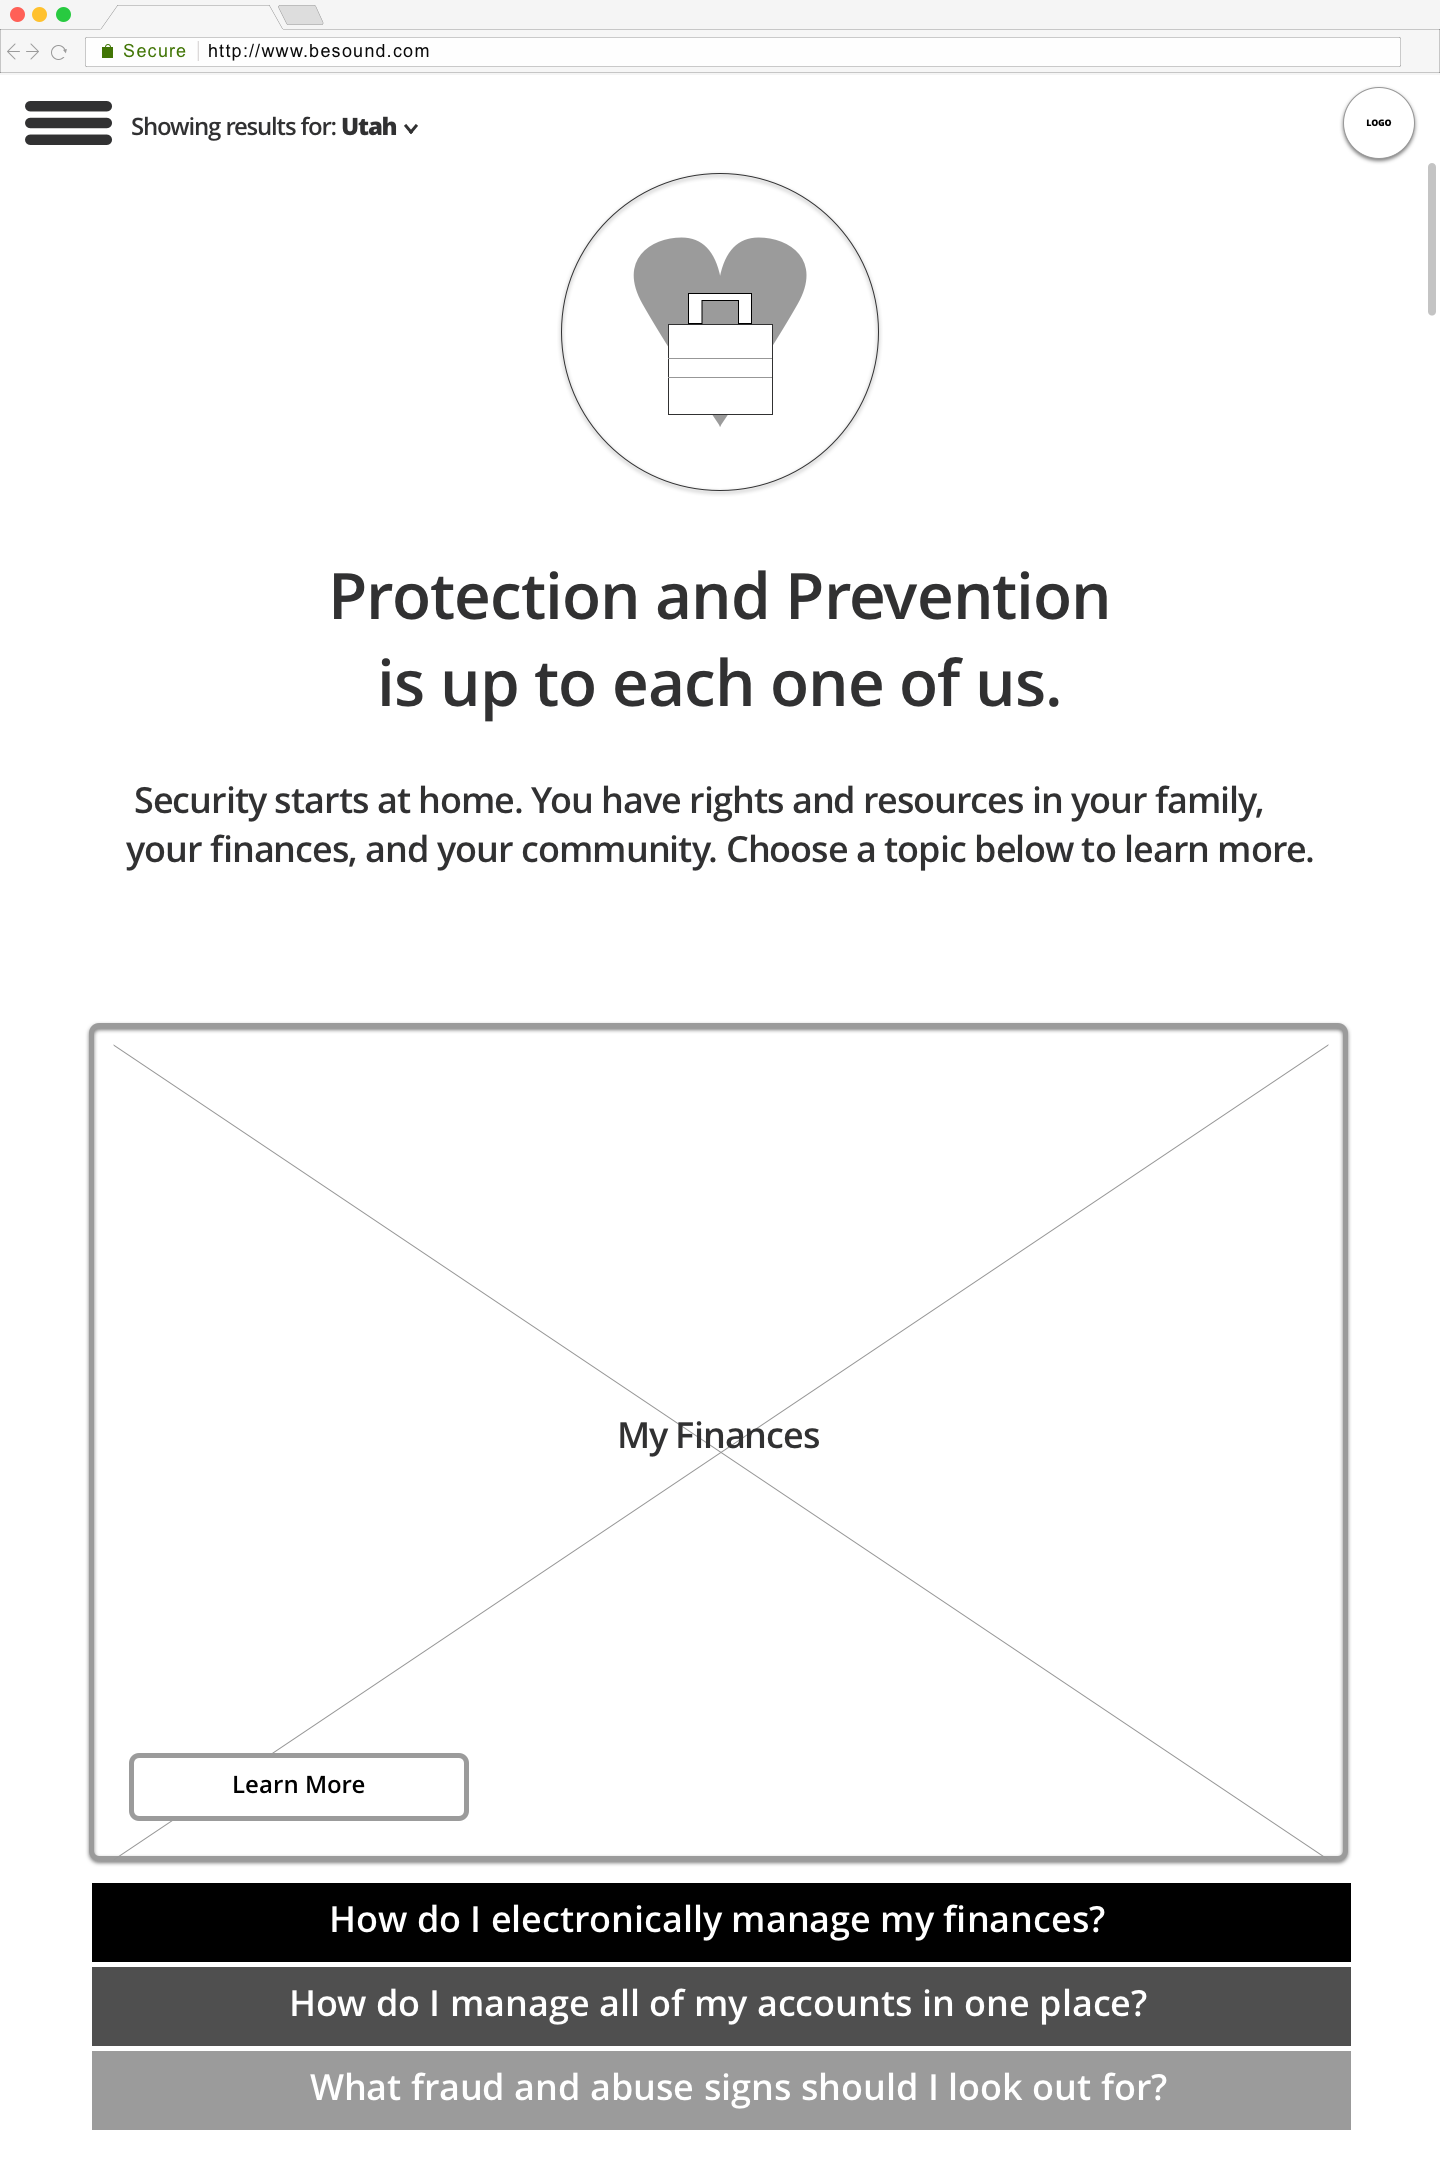 Protection and Prevention_1.png